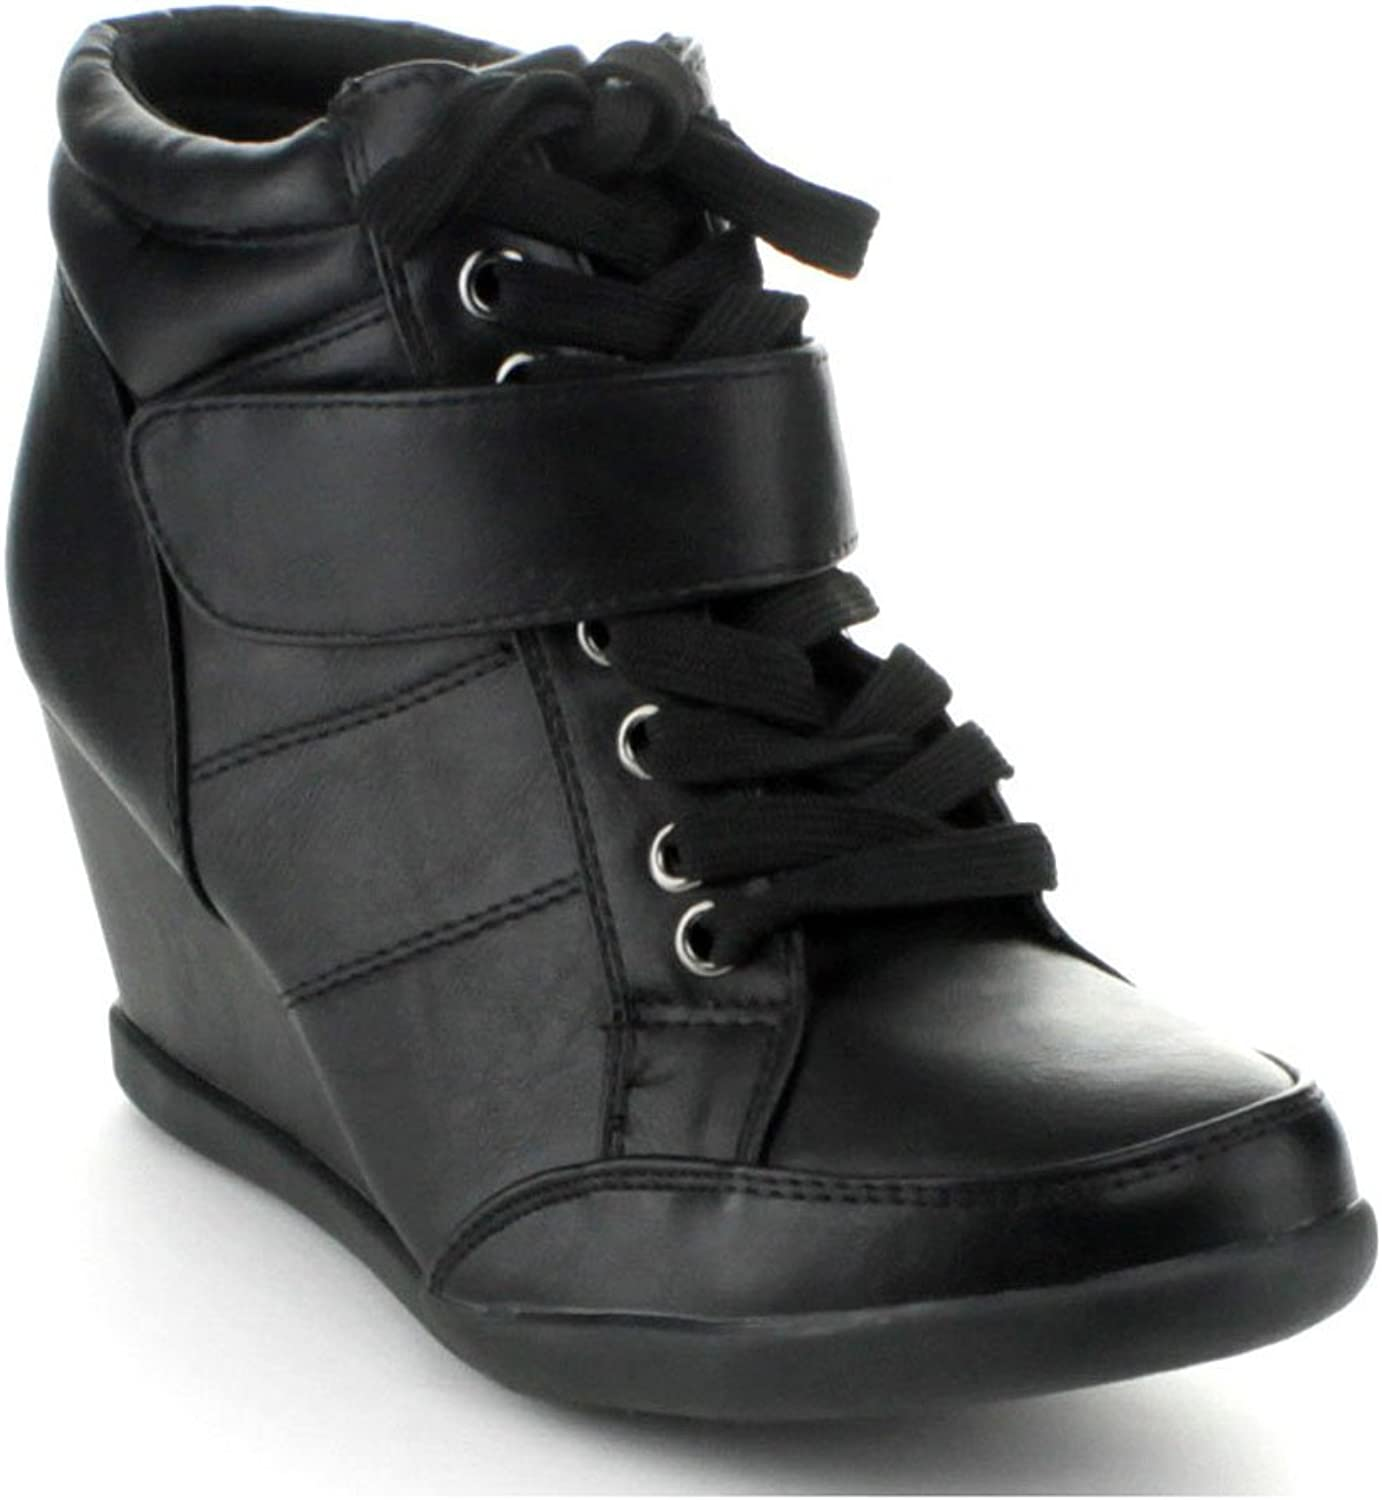 Forever Womens Peggy-61 Hot Lace Up Wedge Sneakers Casual shoes,Black,5.5